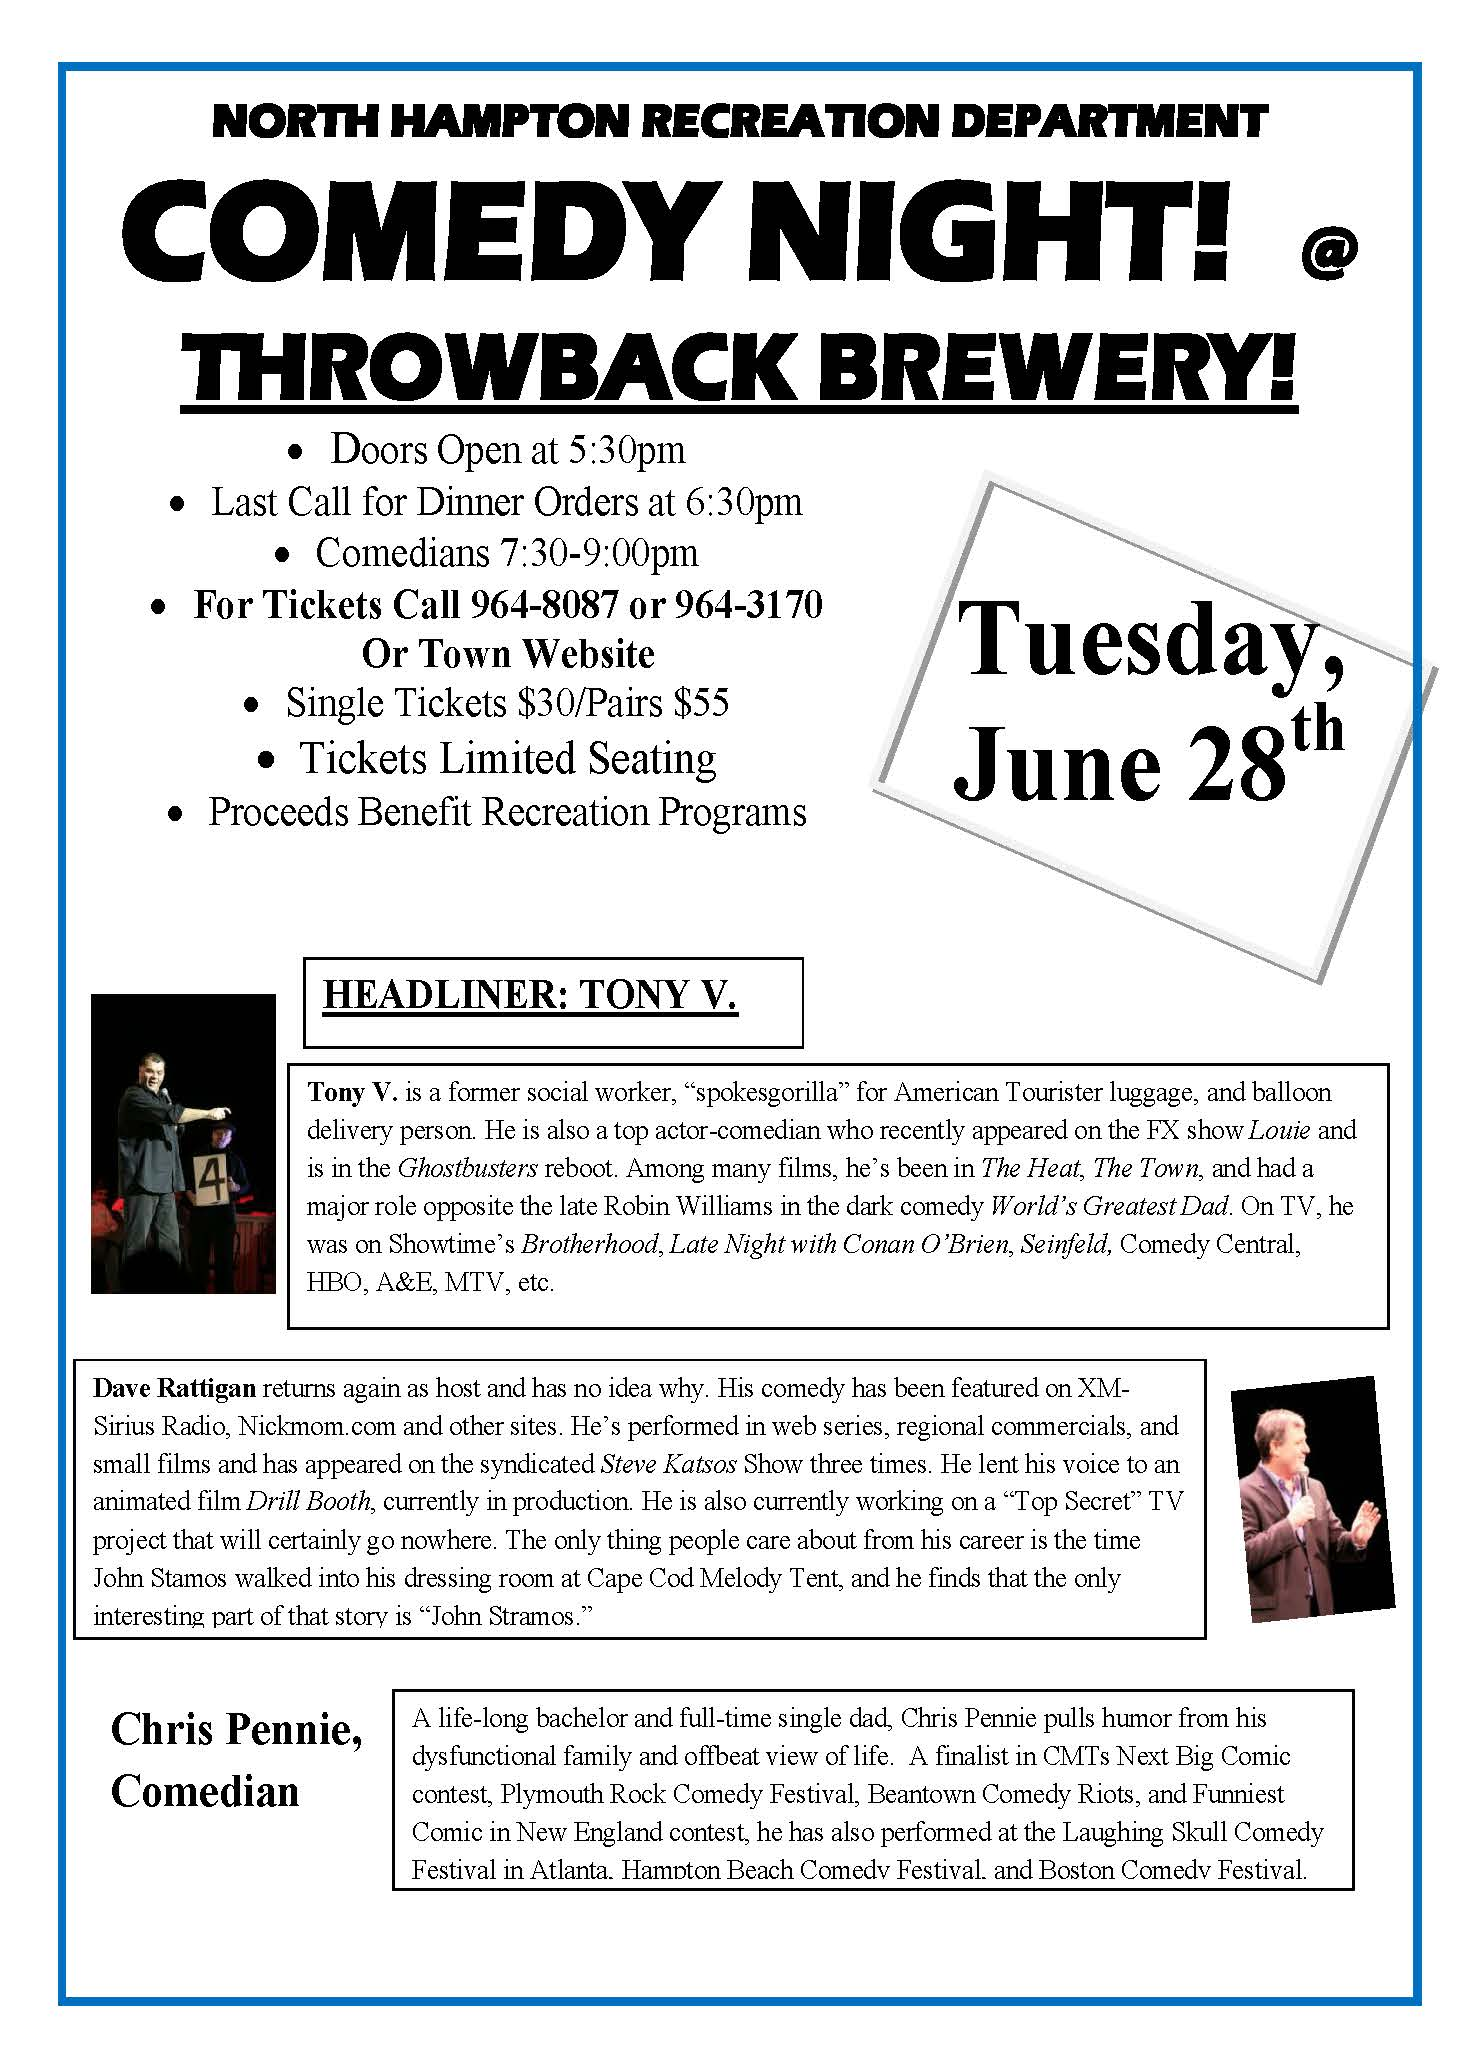 Comedy Night @Throwback – Tuesday, June 28th